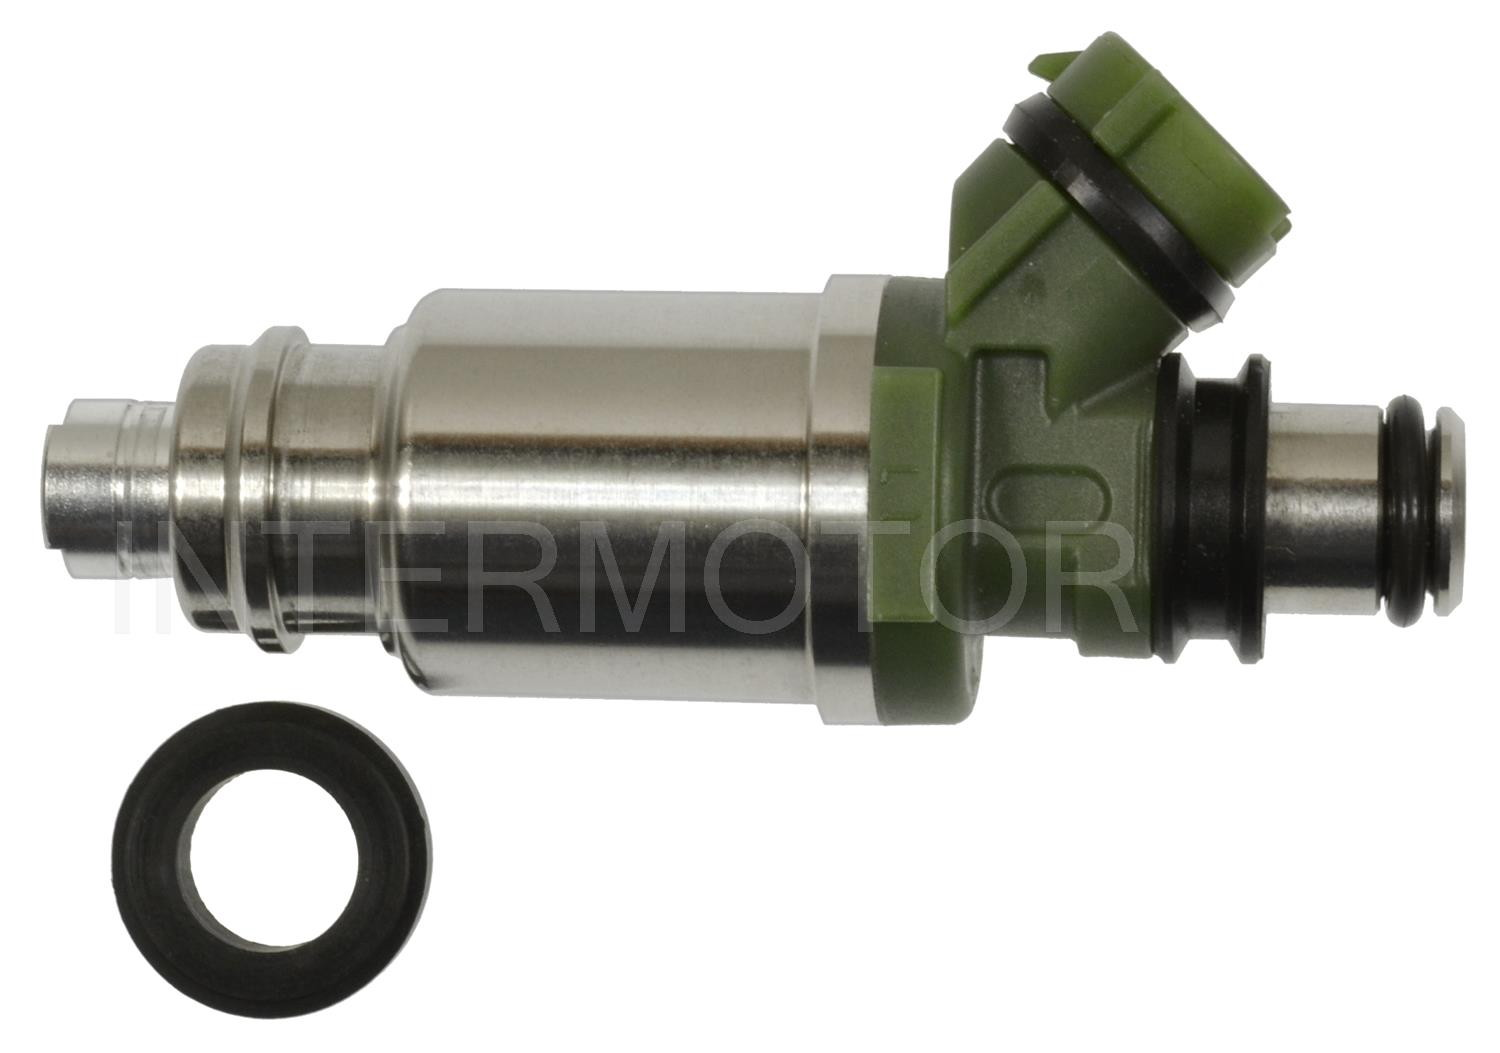 2000 Toyota Camry Fuel Injector Filter Location Si Fj295